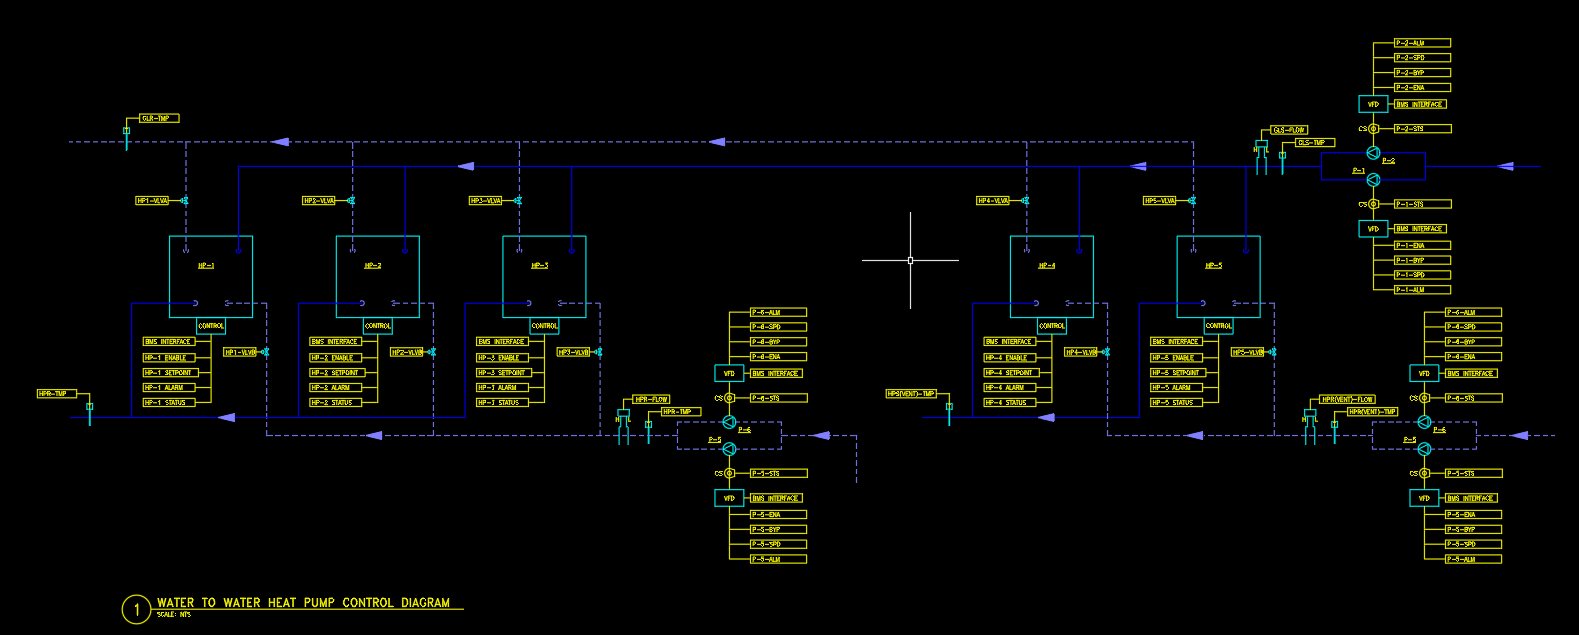 Water to Water Heat Pump Control Diagram